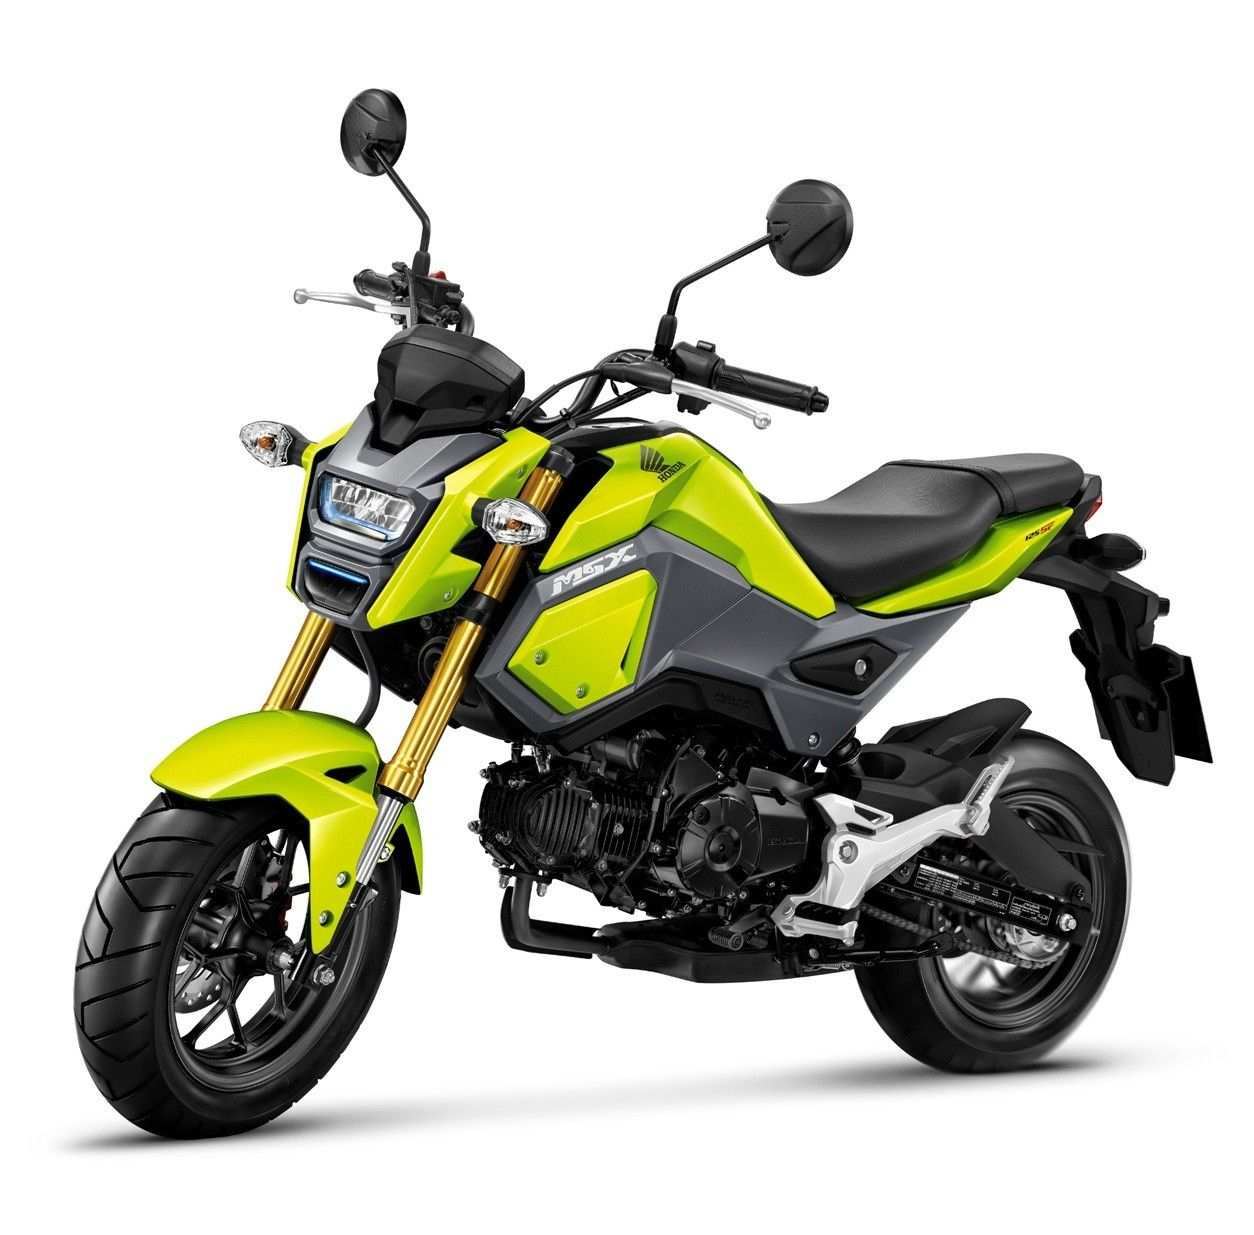 71 Gallery of 2020 Honda Grom Exterior Date Release with 2020 Honda Grom Exterior Date